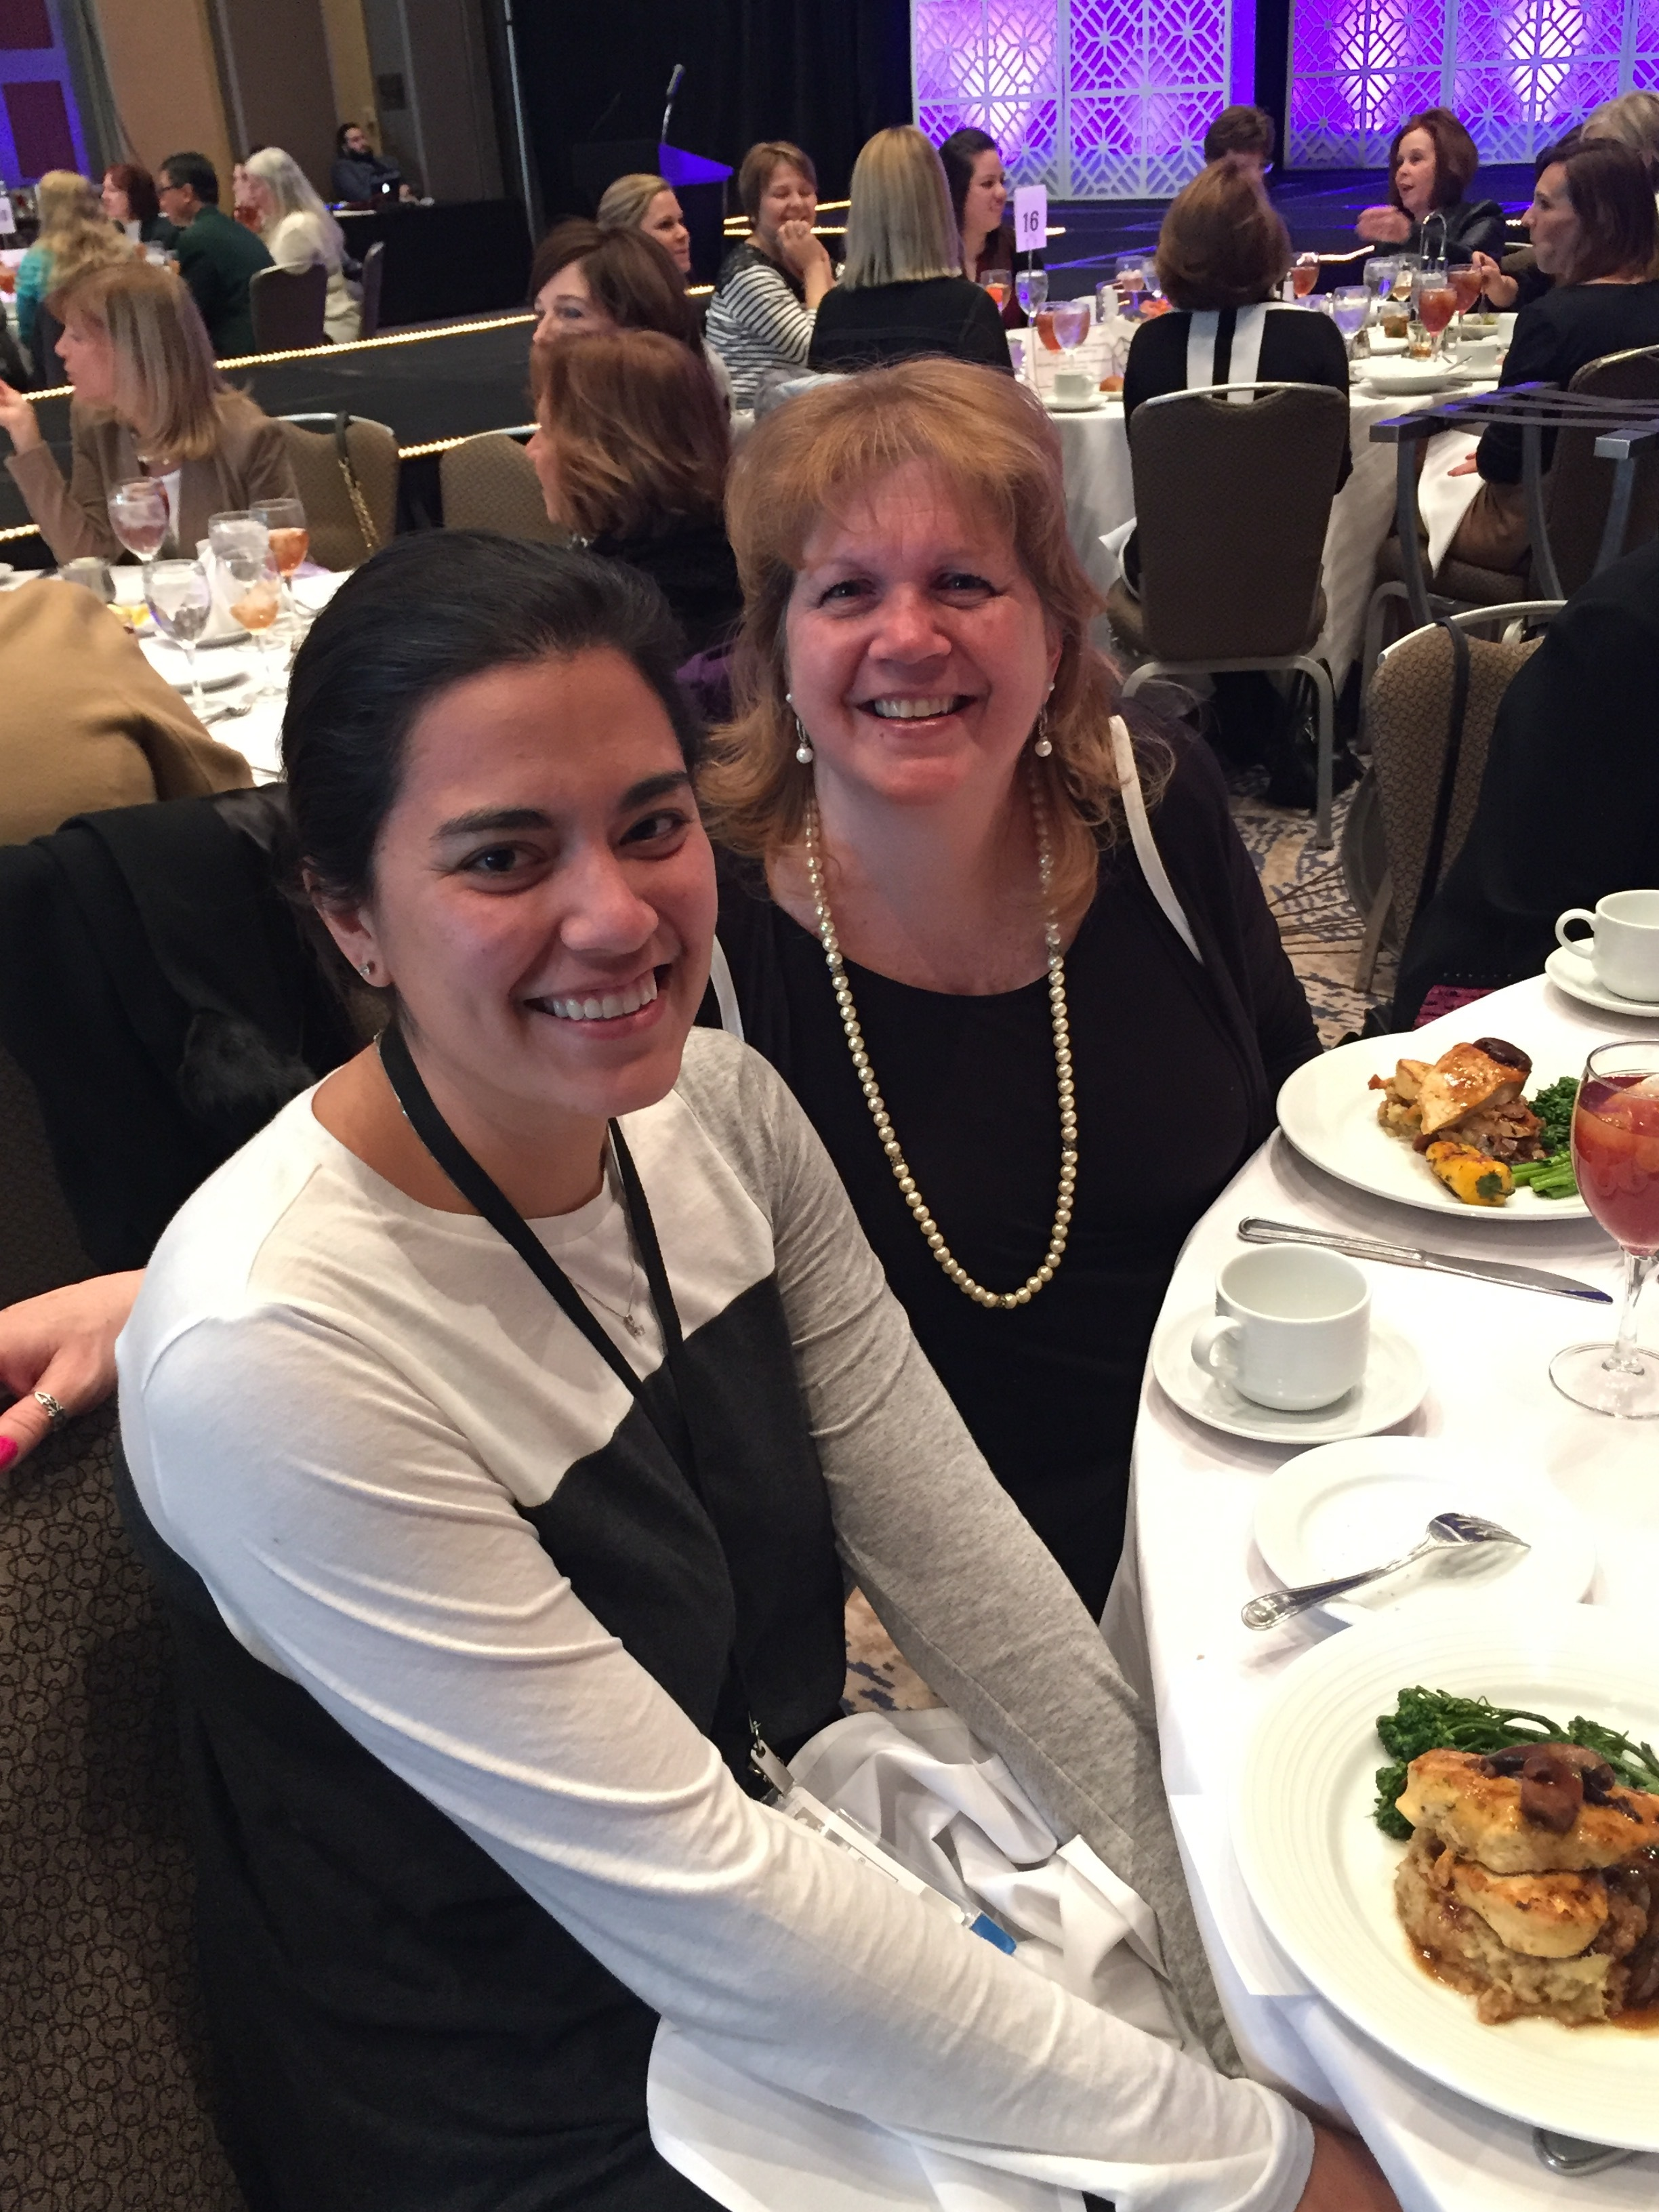 Dr. Thiki Bertrand and Mrs. Gayle Biasiello at the Midwinter Meeting 2016